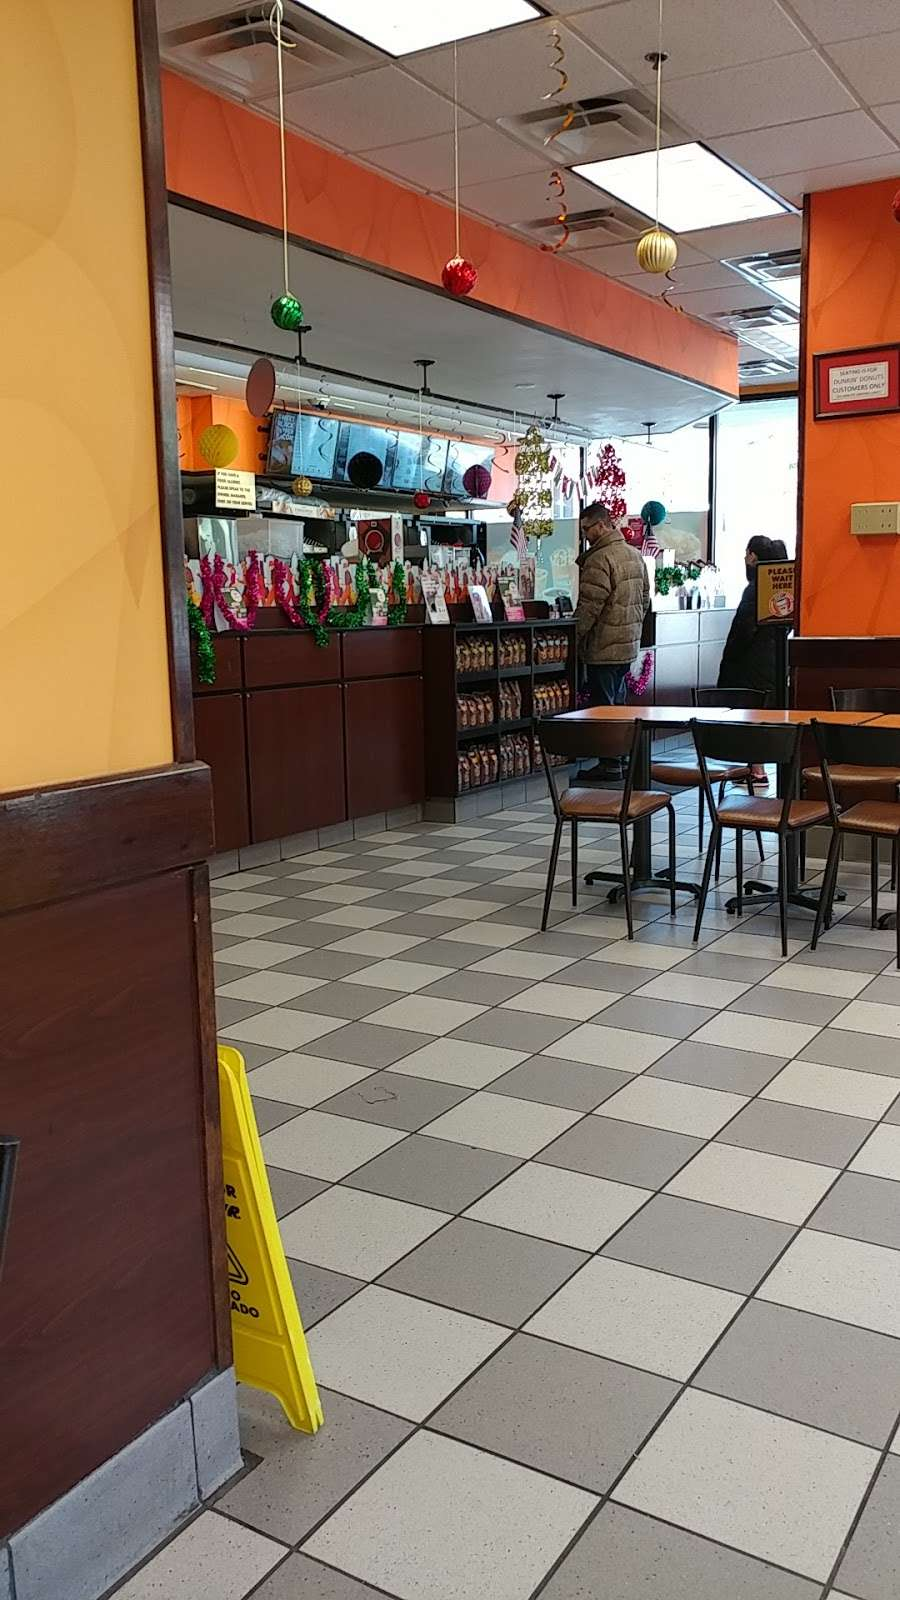 Dunkin Donuts - cafe  | Photo 3 of 10 | Address: 850 Bronx River Rd, Yonkers, NY 10708, USA | Phone: (914) 237-5921